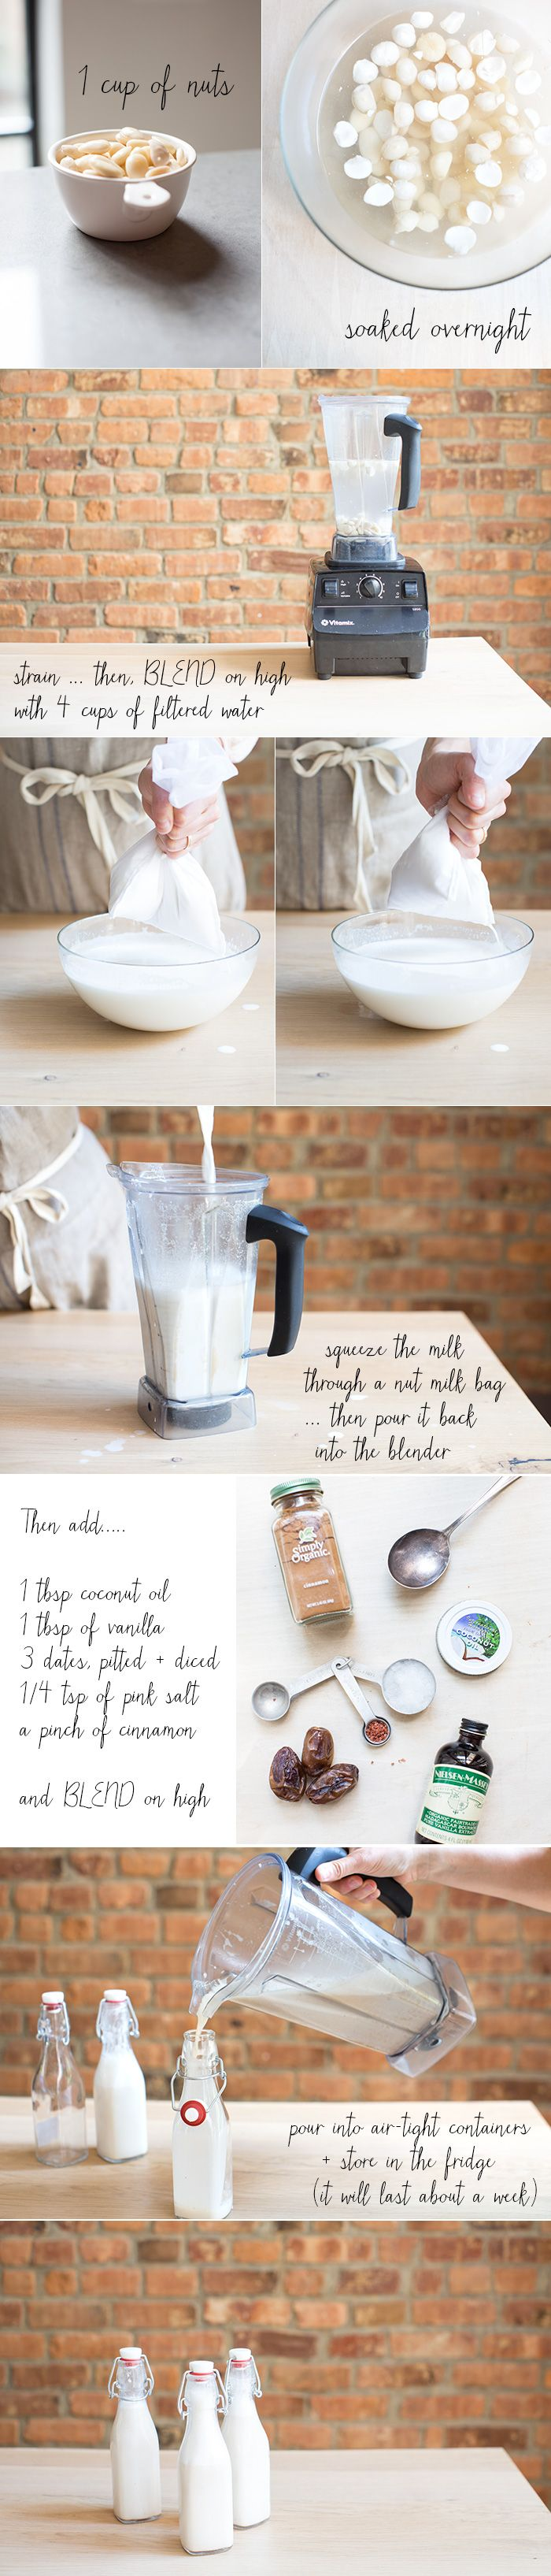 how to make the most delicious nut milk   a guide with pictures! — whats cooking good looking